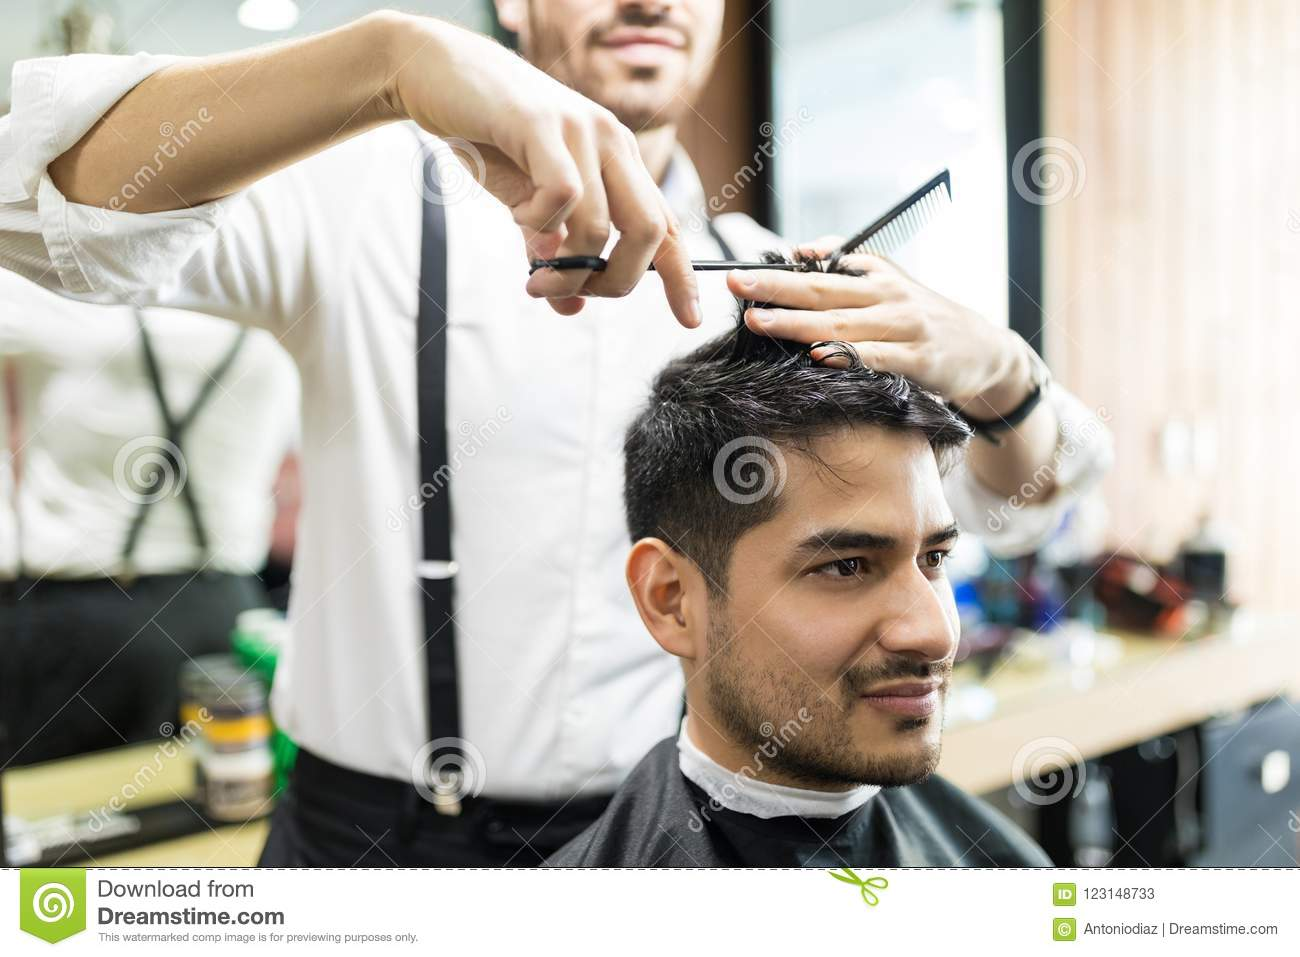 Professional Barber Giving Haircut To Male In Shop